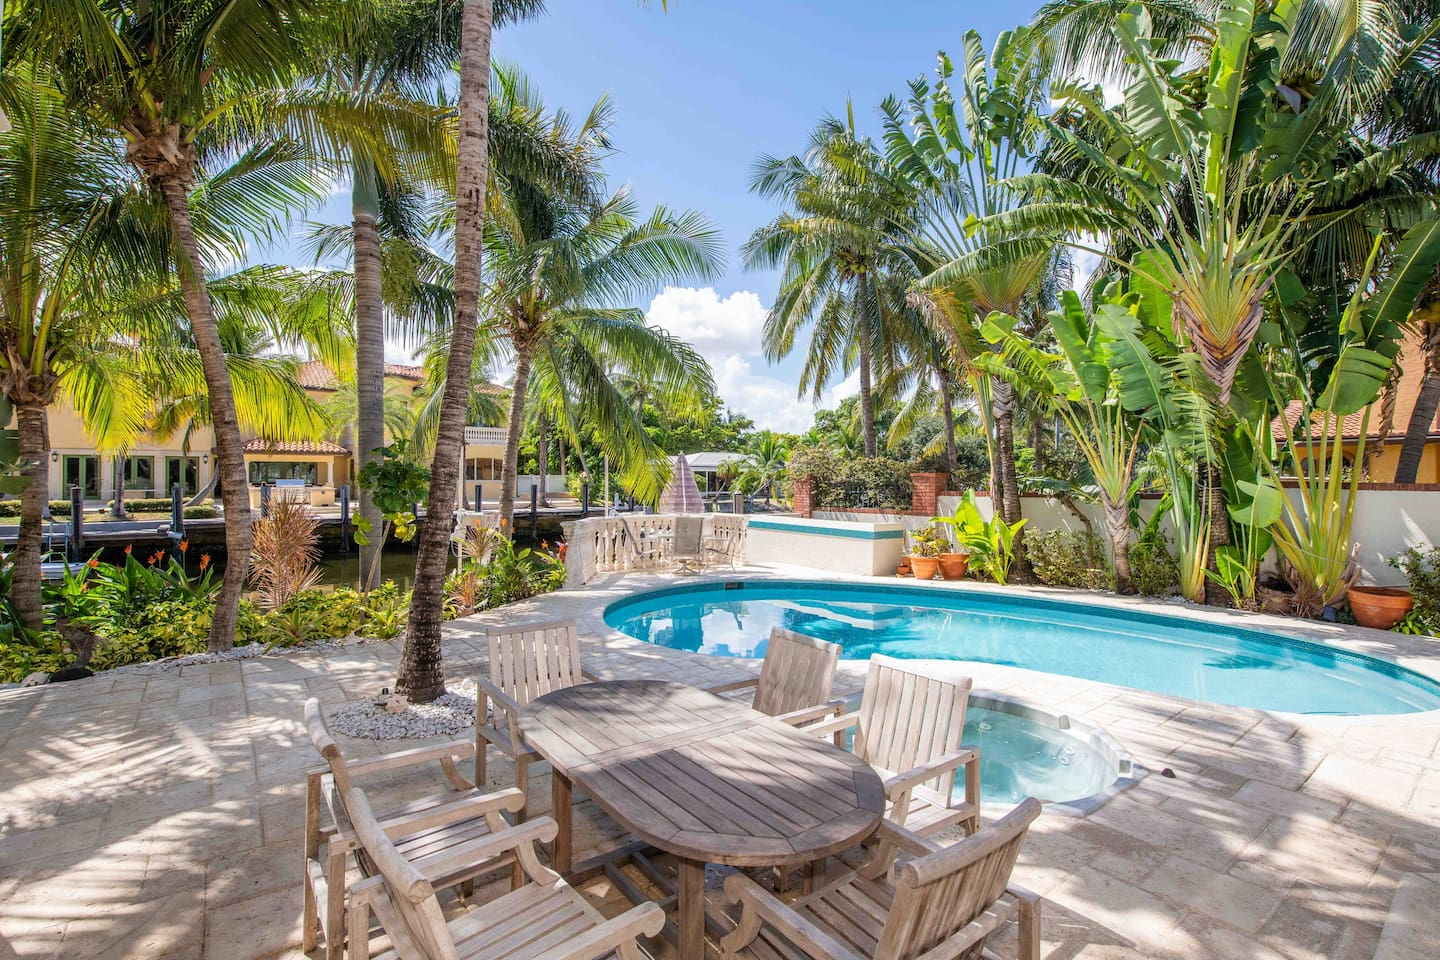 Welcome to Fort Lauderdale! Your tropical getaway is professionally managed by TurnKey Vacation Rentals.